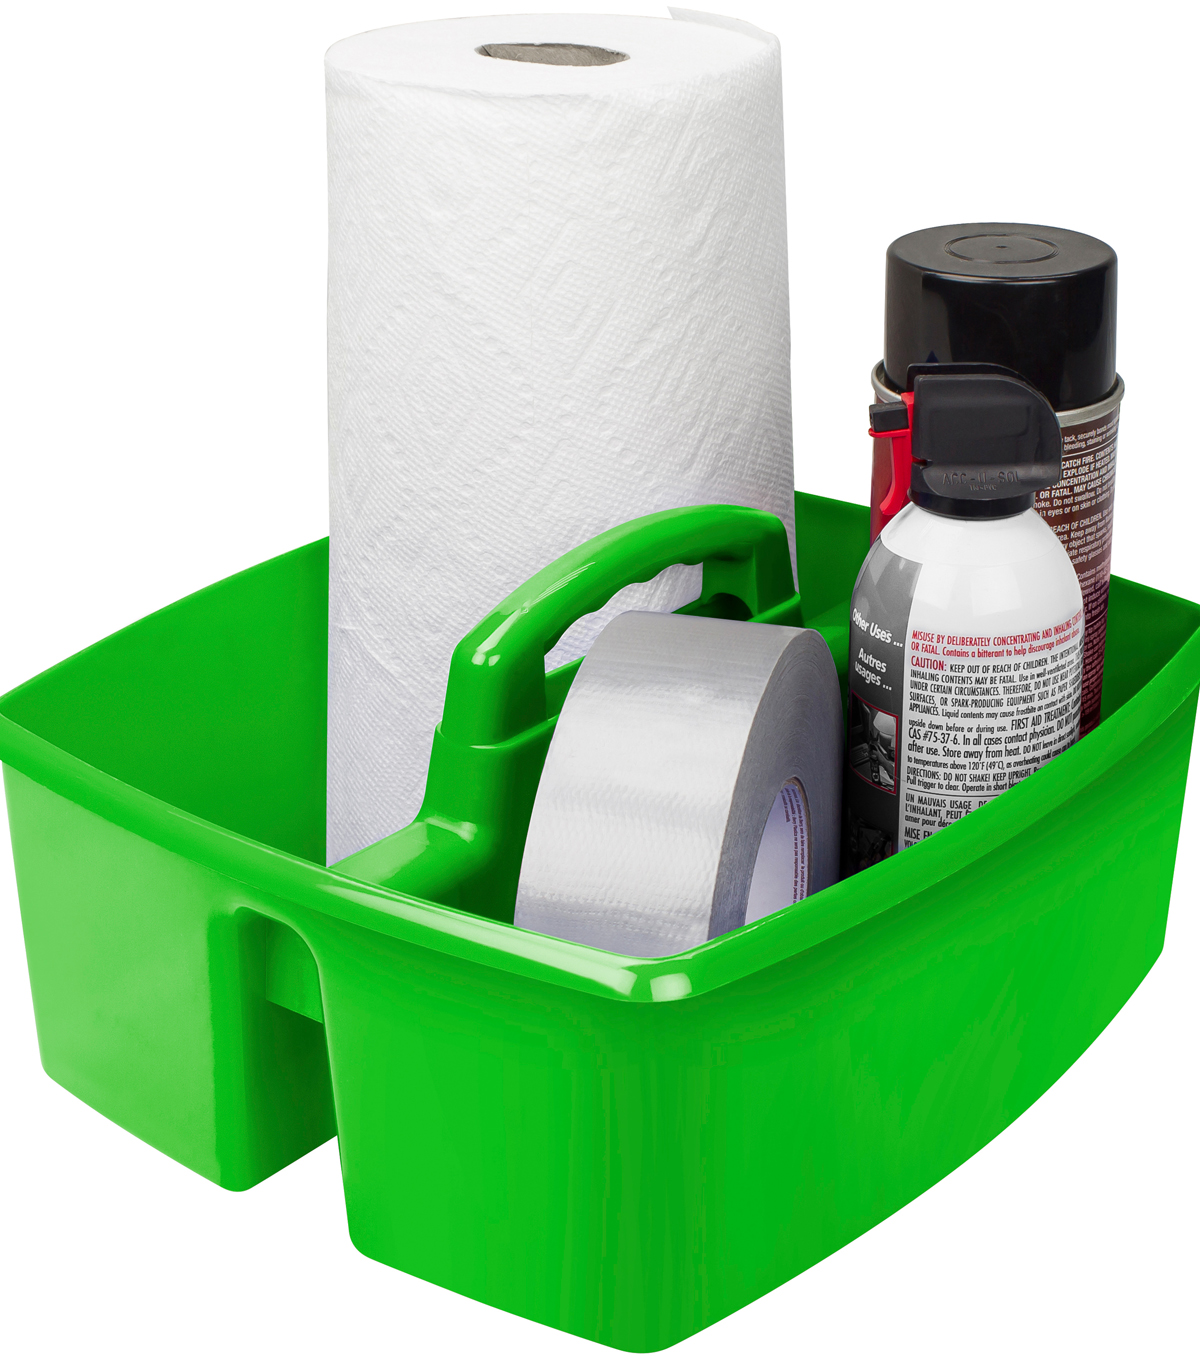 Storex Small 3-compartment Caddy-Green